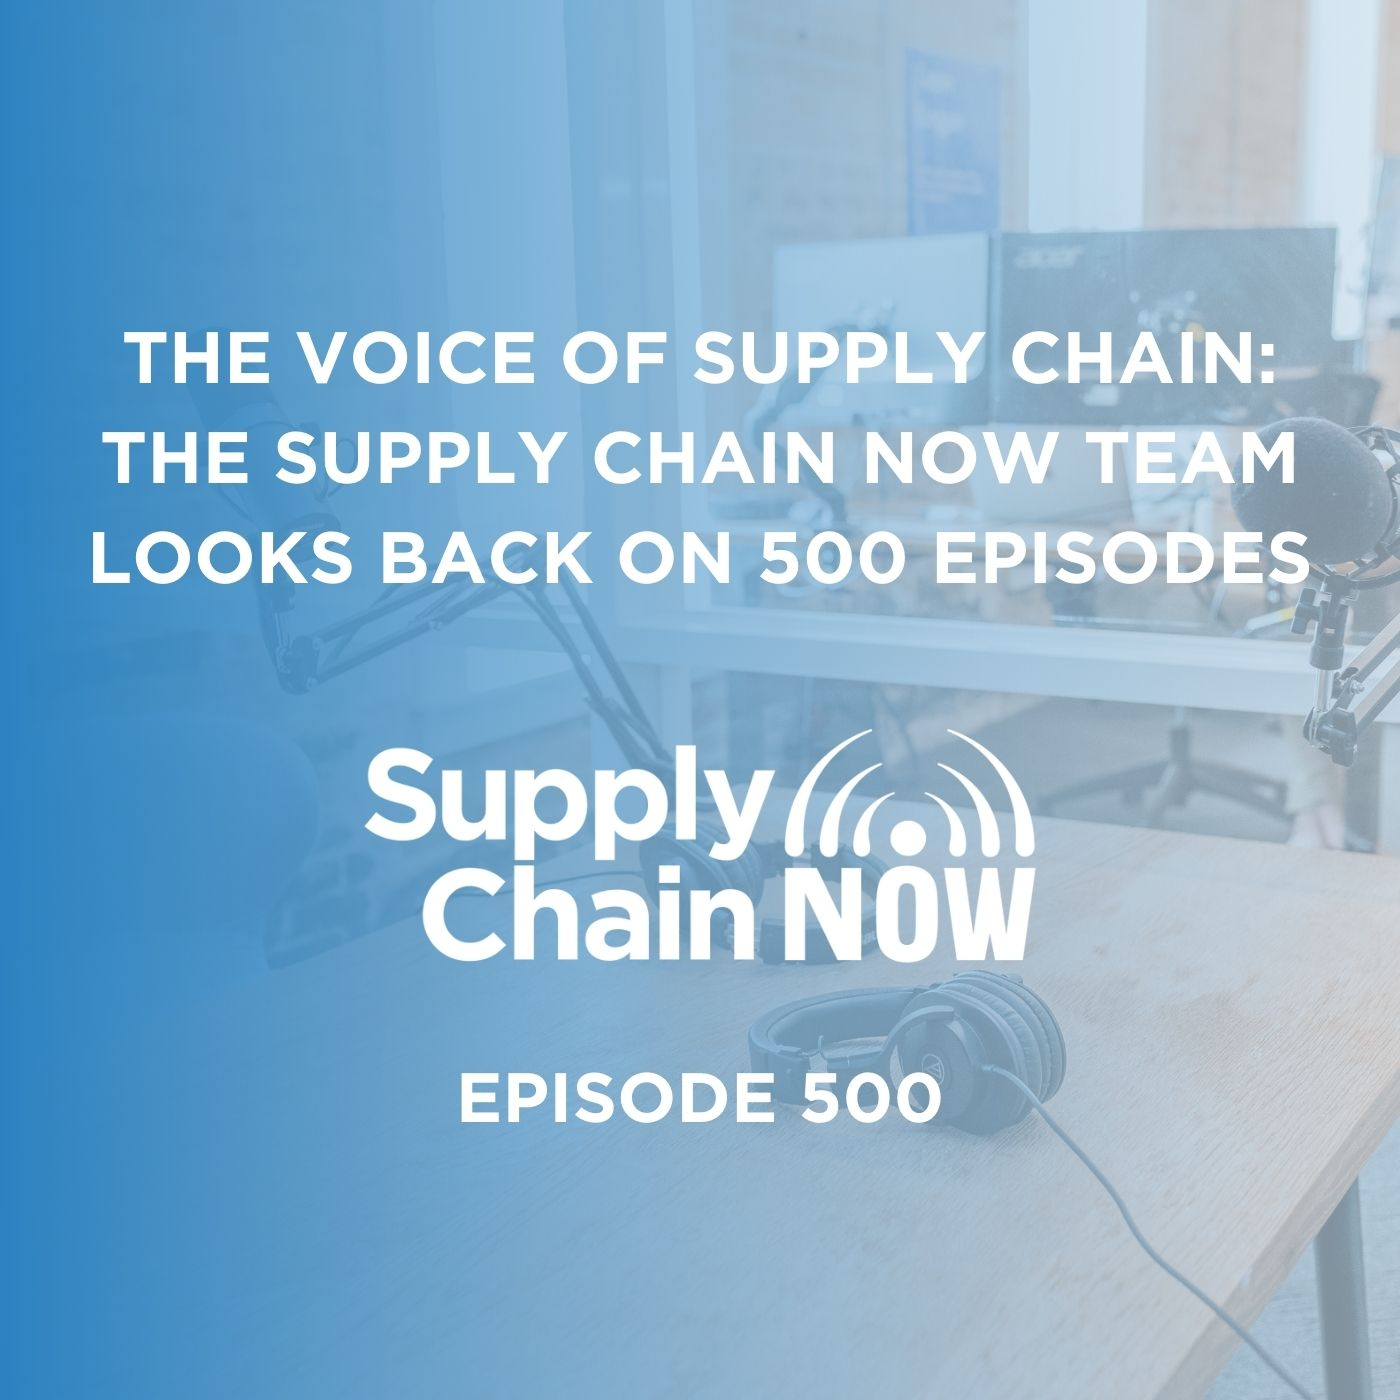 The Voice of Supply Chain: The Supply Chain Now Team Looks Back on 500 Episodes